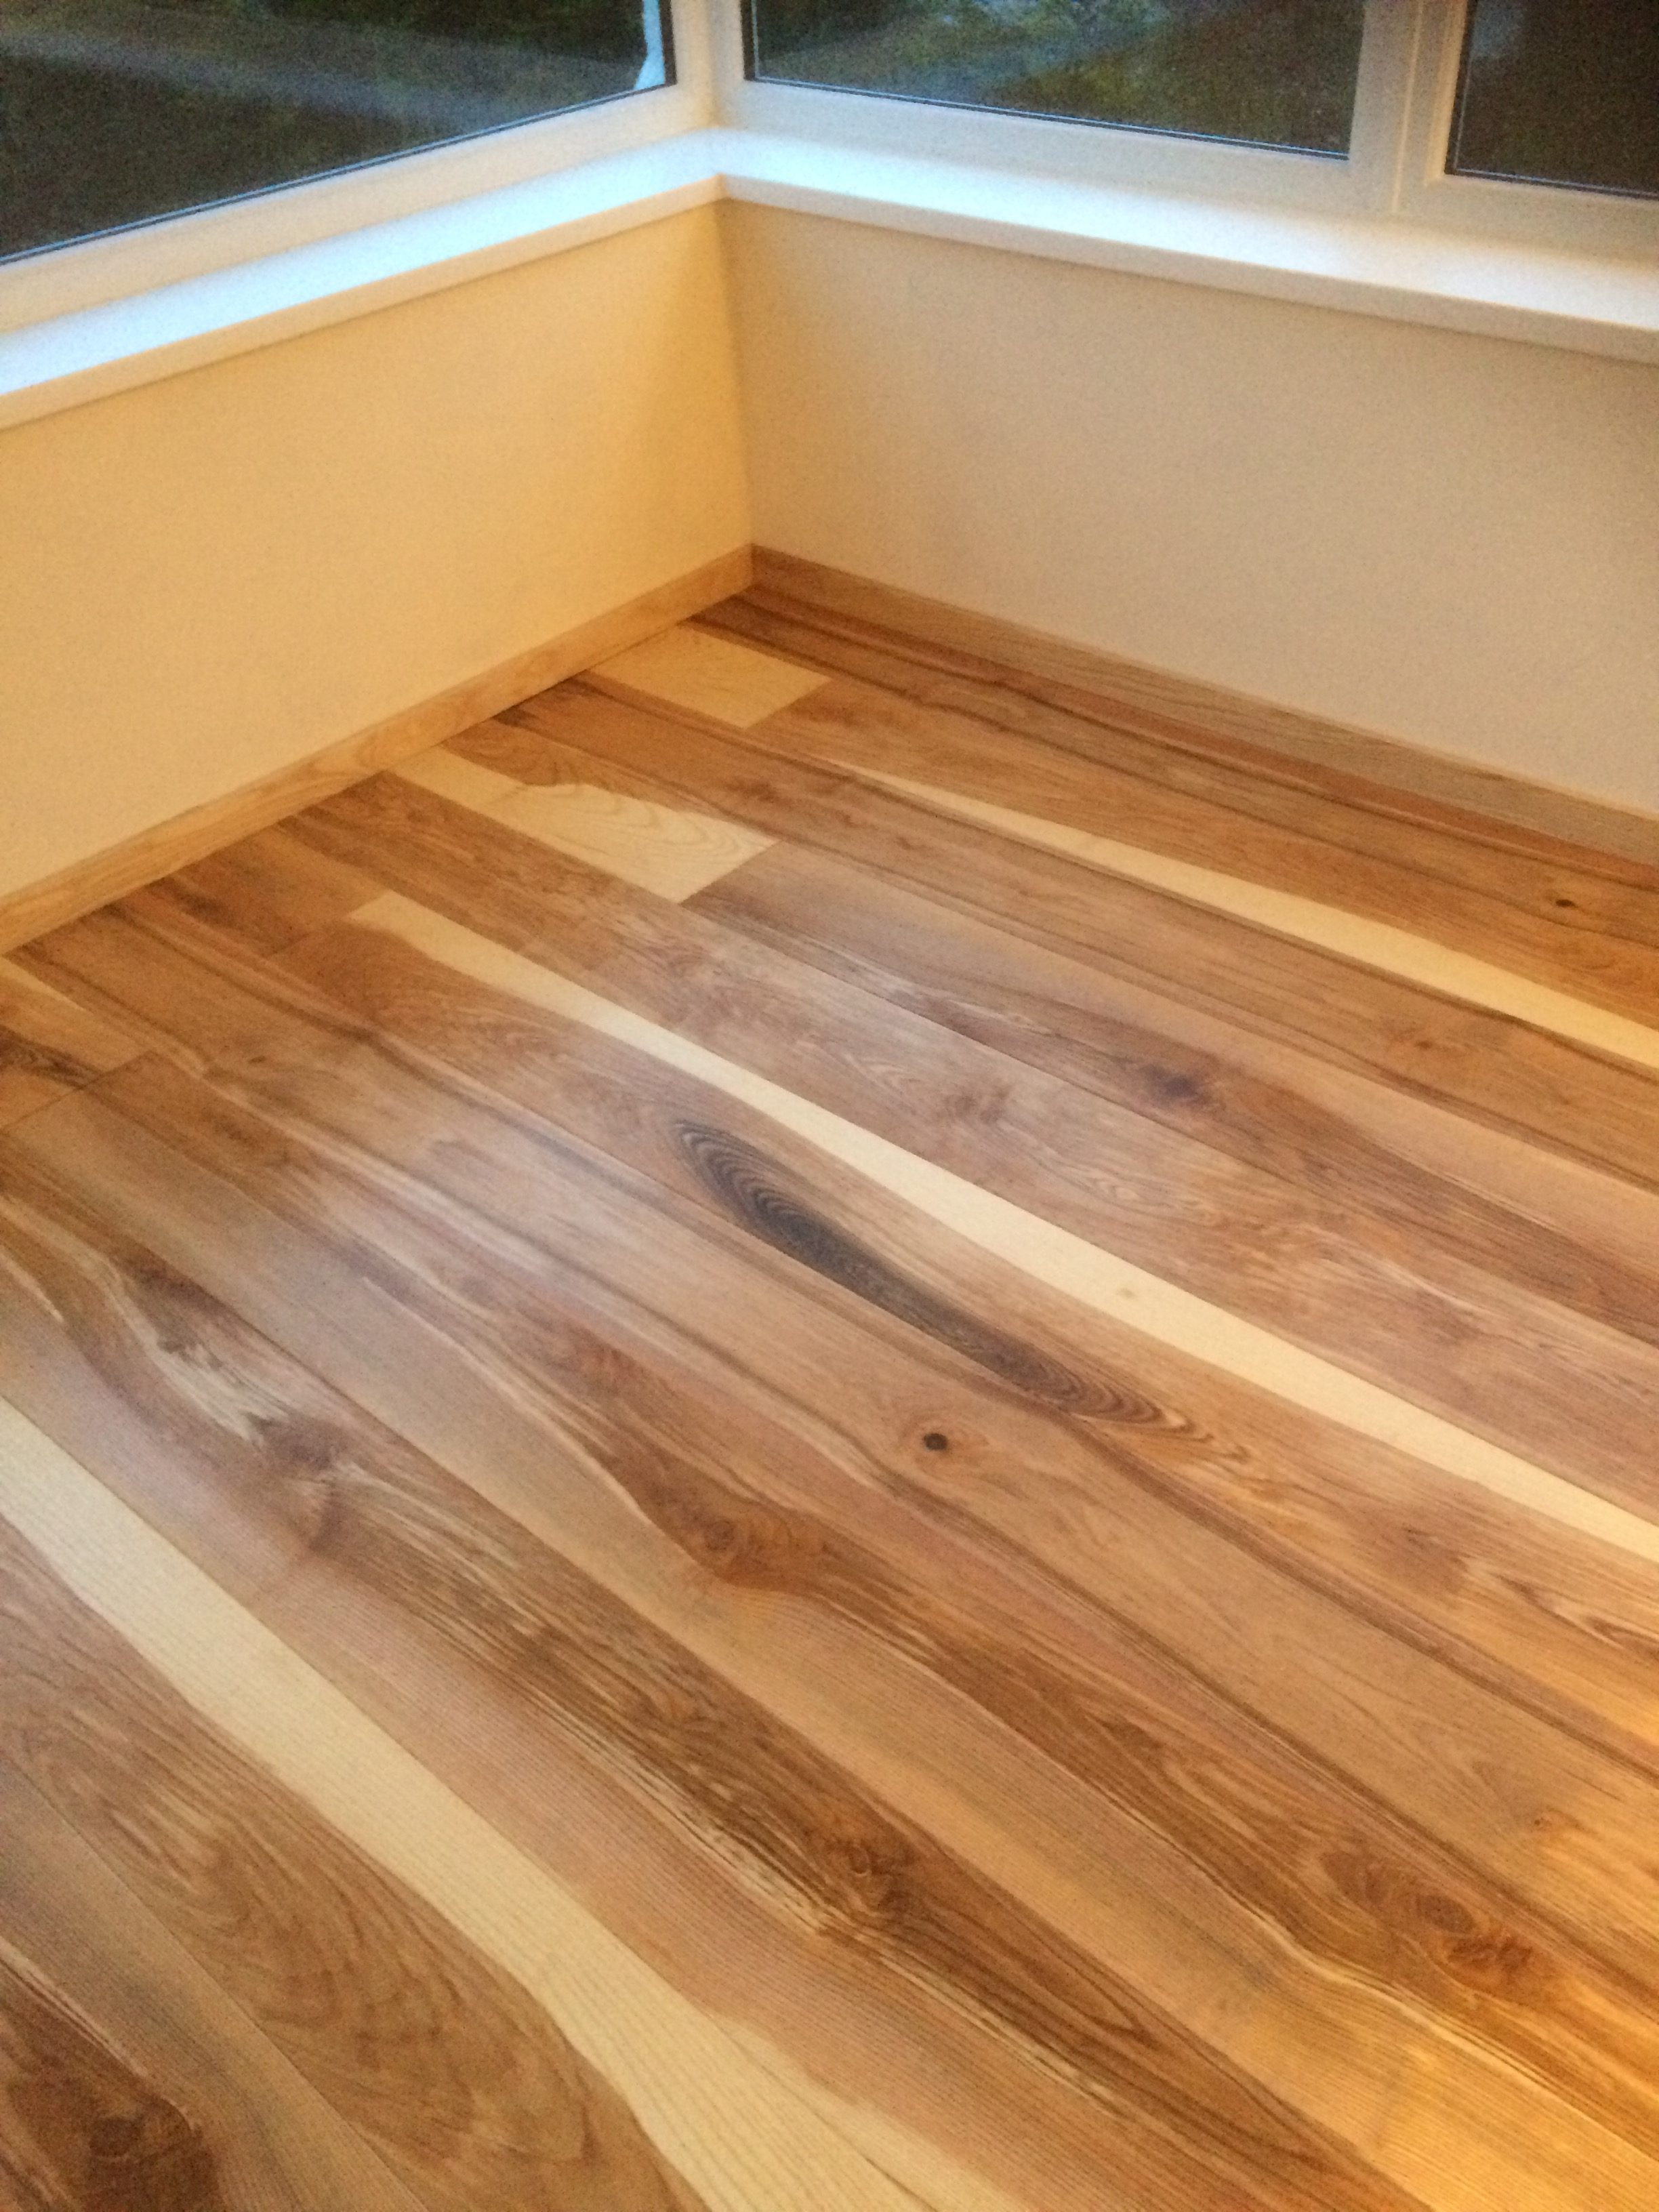 Aspen and Ash reclaimed and new engineered wood flooring